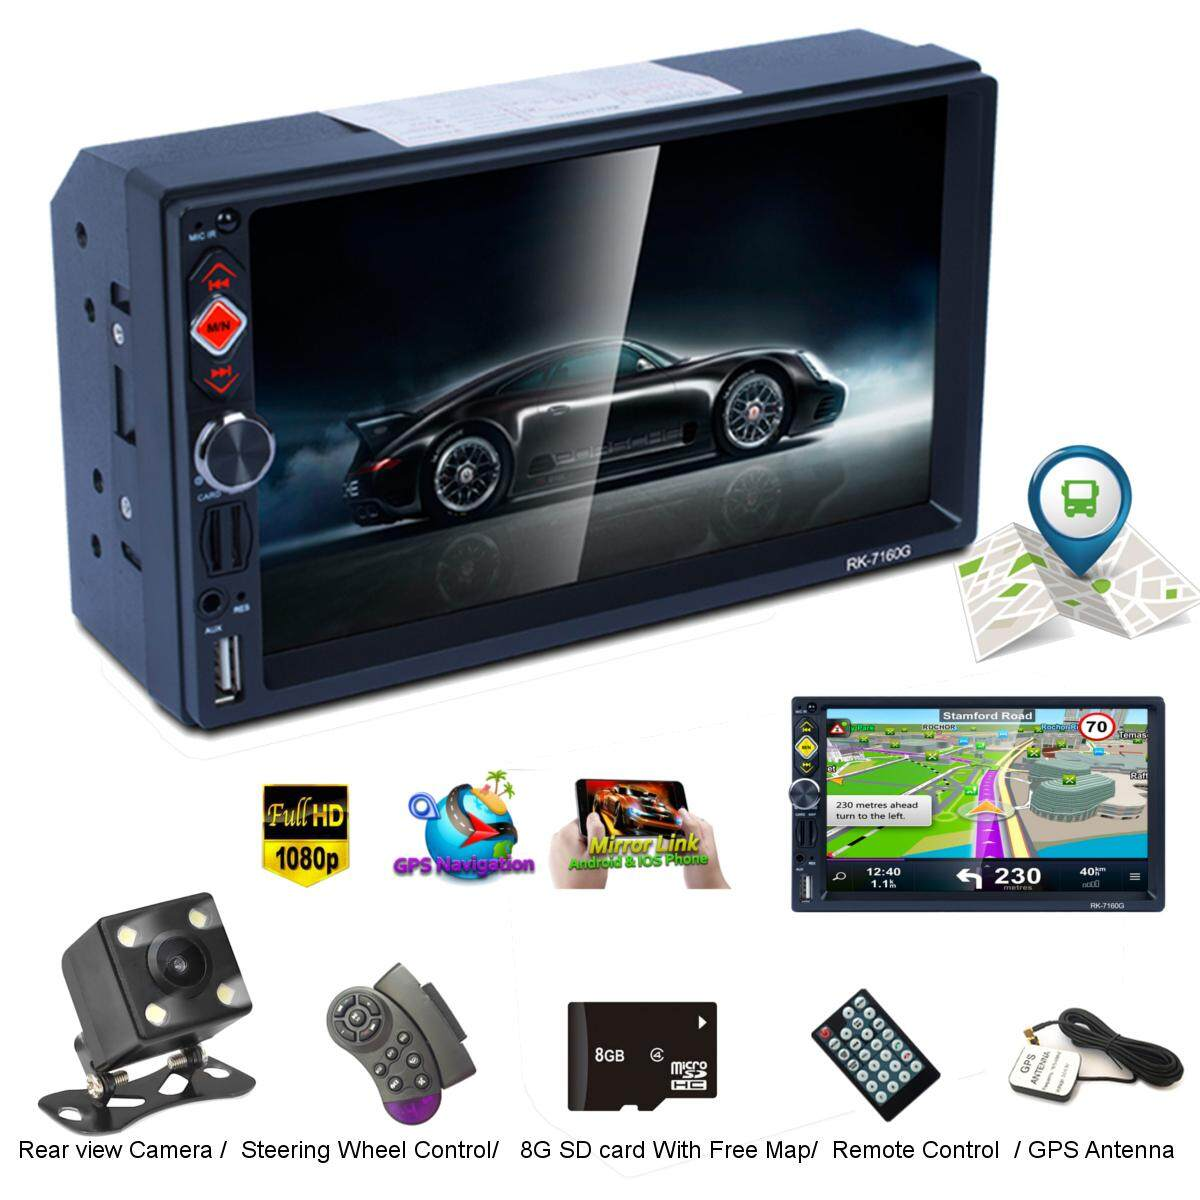 7 Gps Hd Mp5 Player Stereo Radio Bluetooth Fm Rds Quick Charge Mirror Link Cam By Elec Mall.